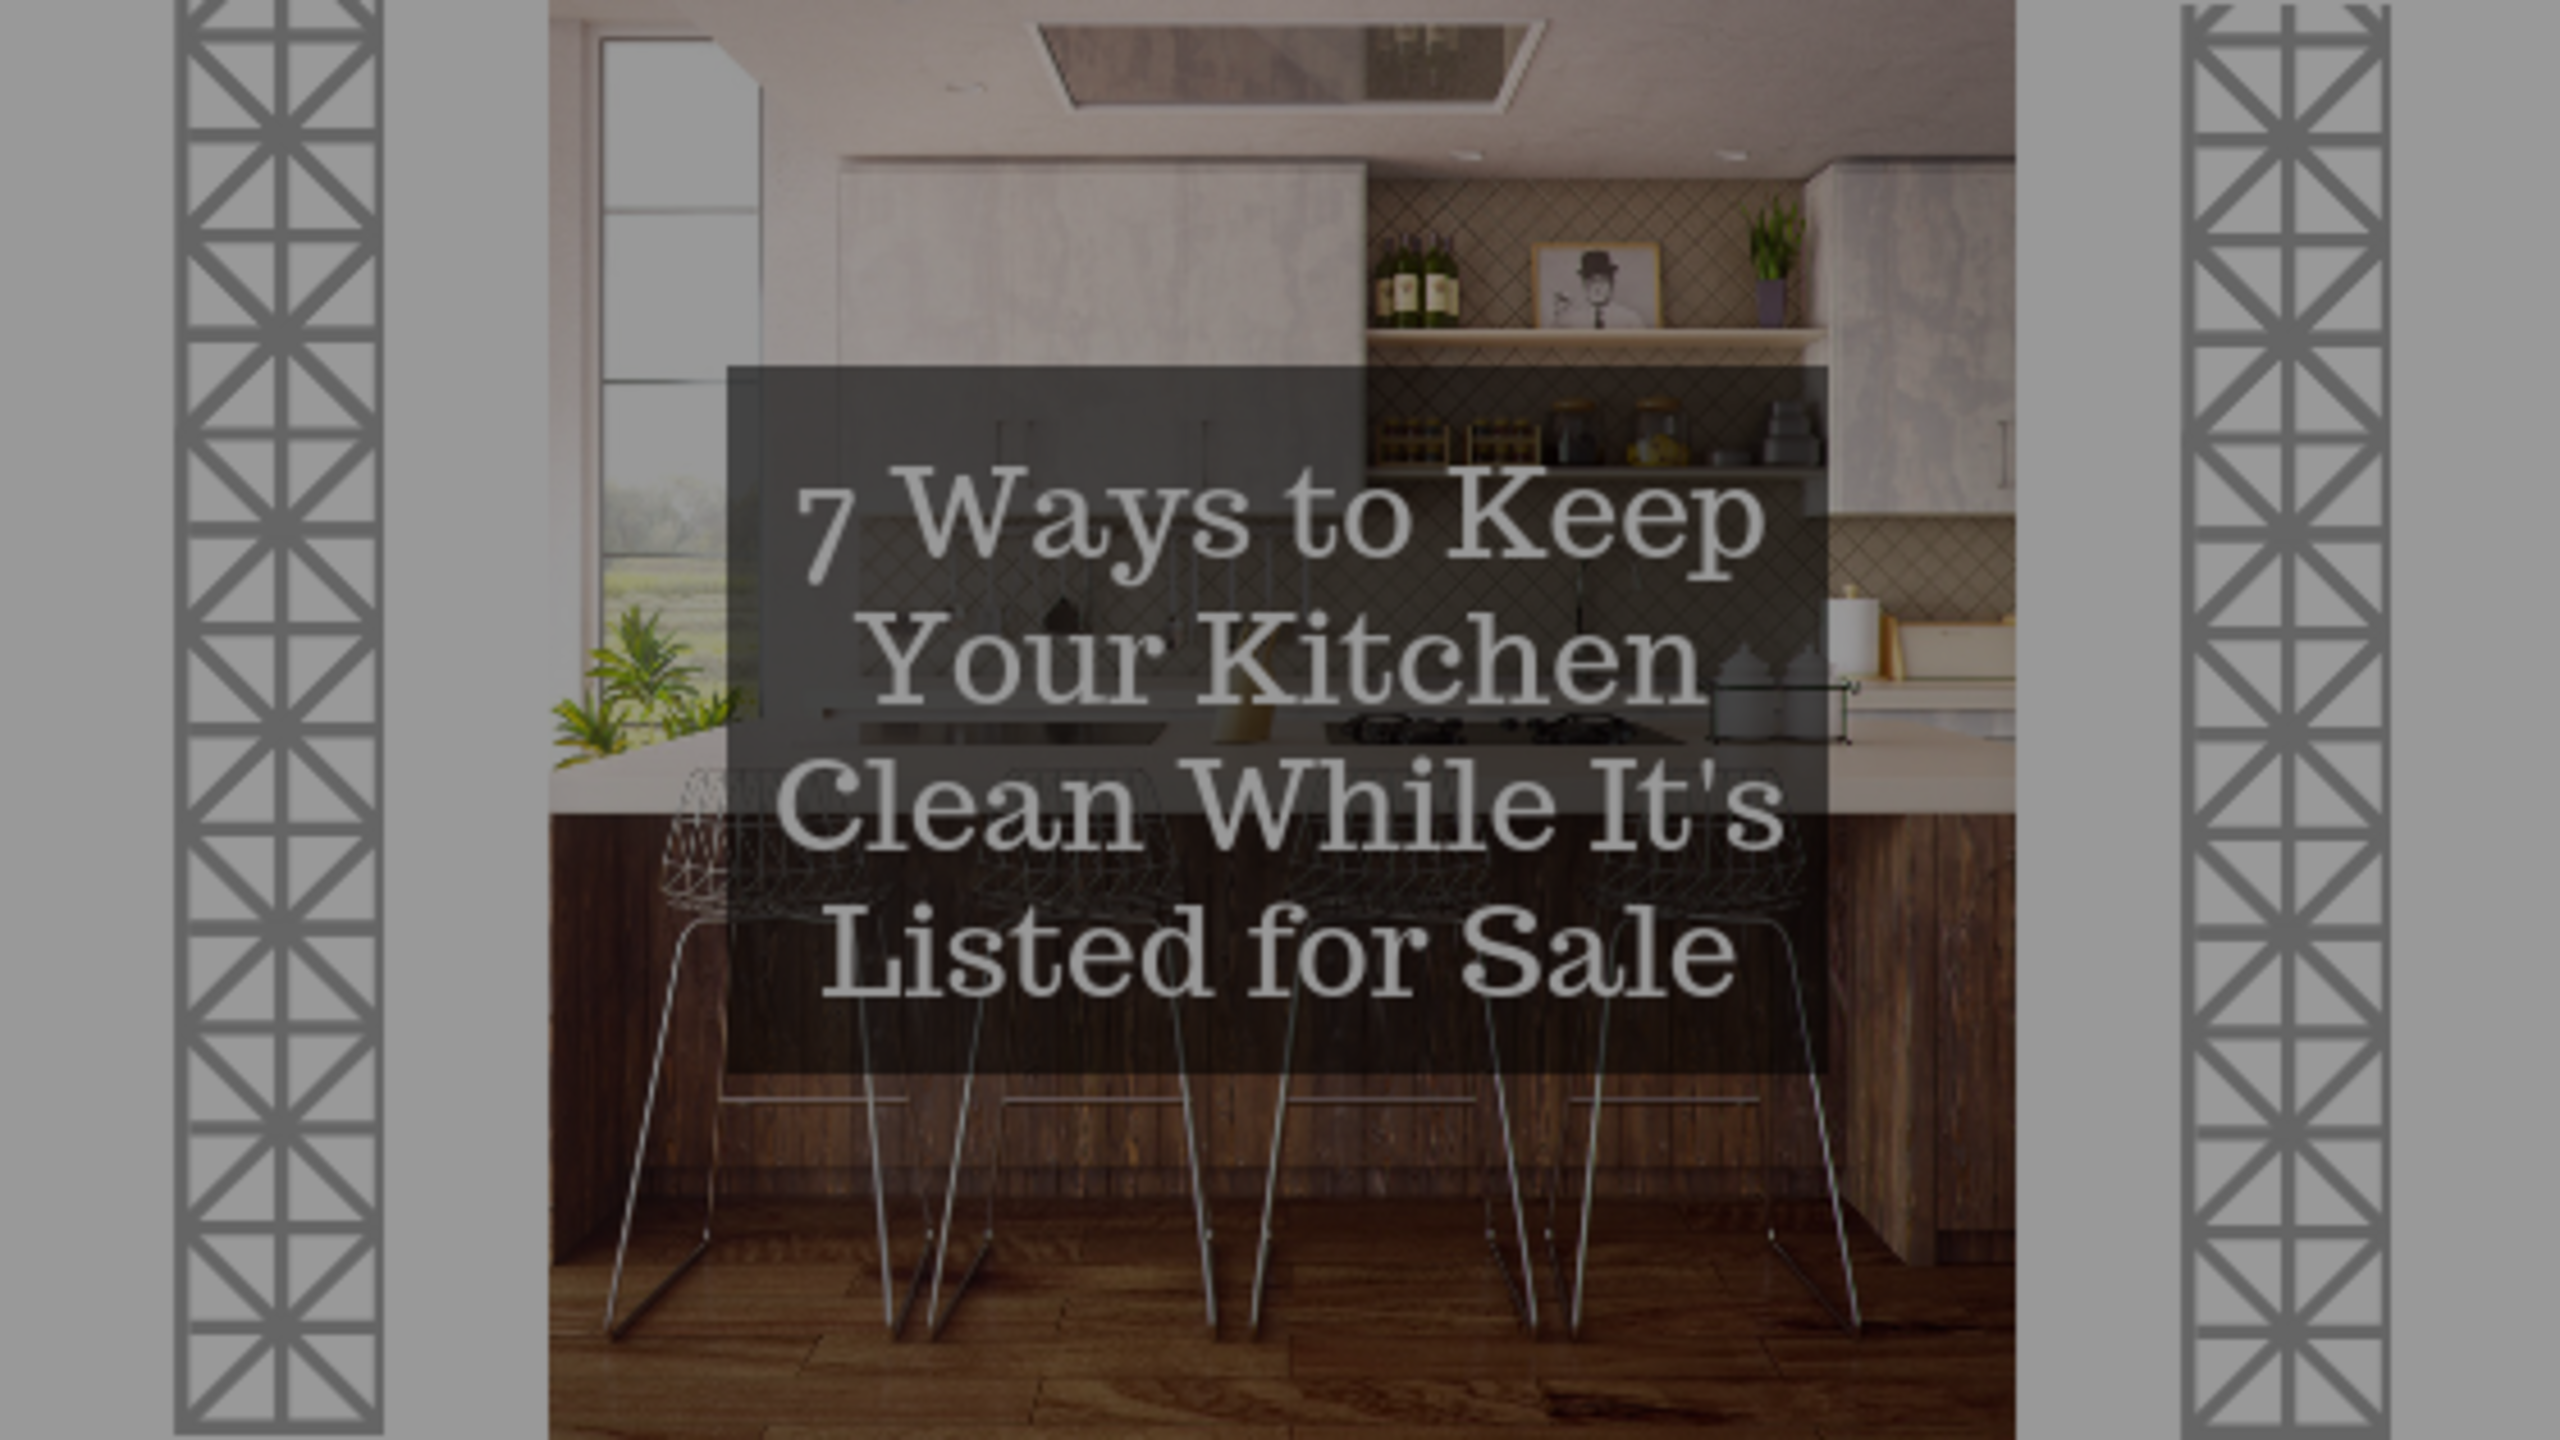 7 Ways to Keep Your Kitchen Clean While Your Home is Listed for Sale